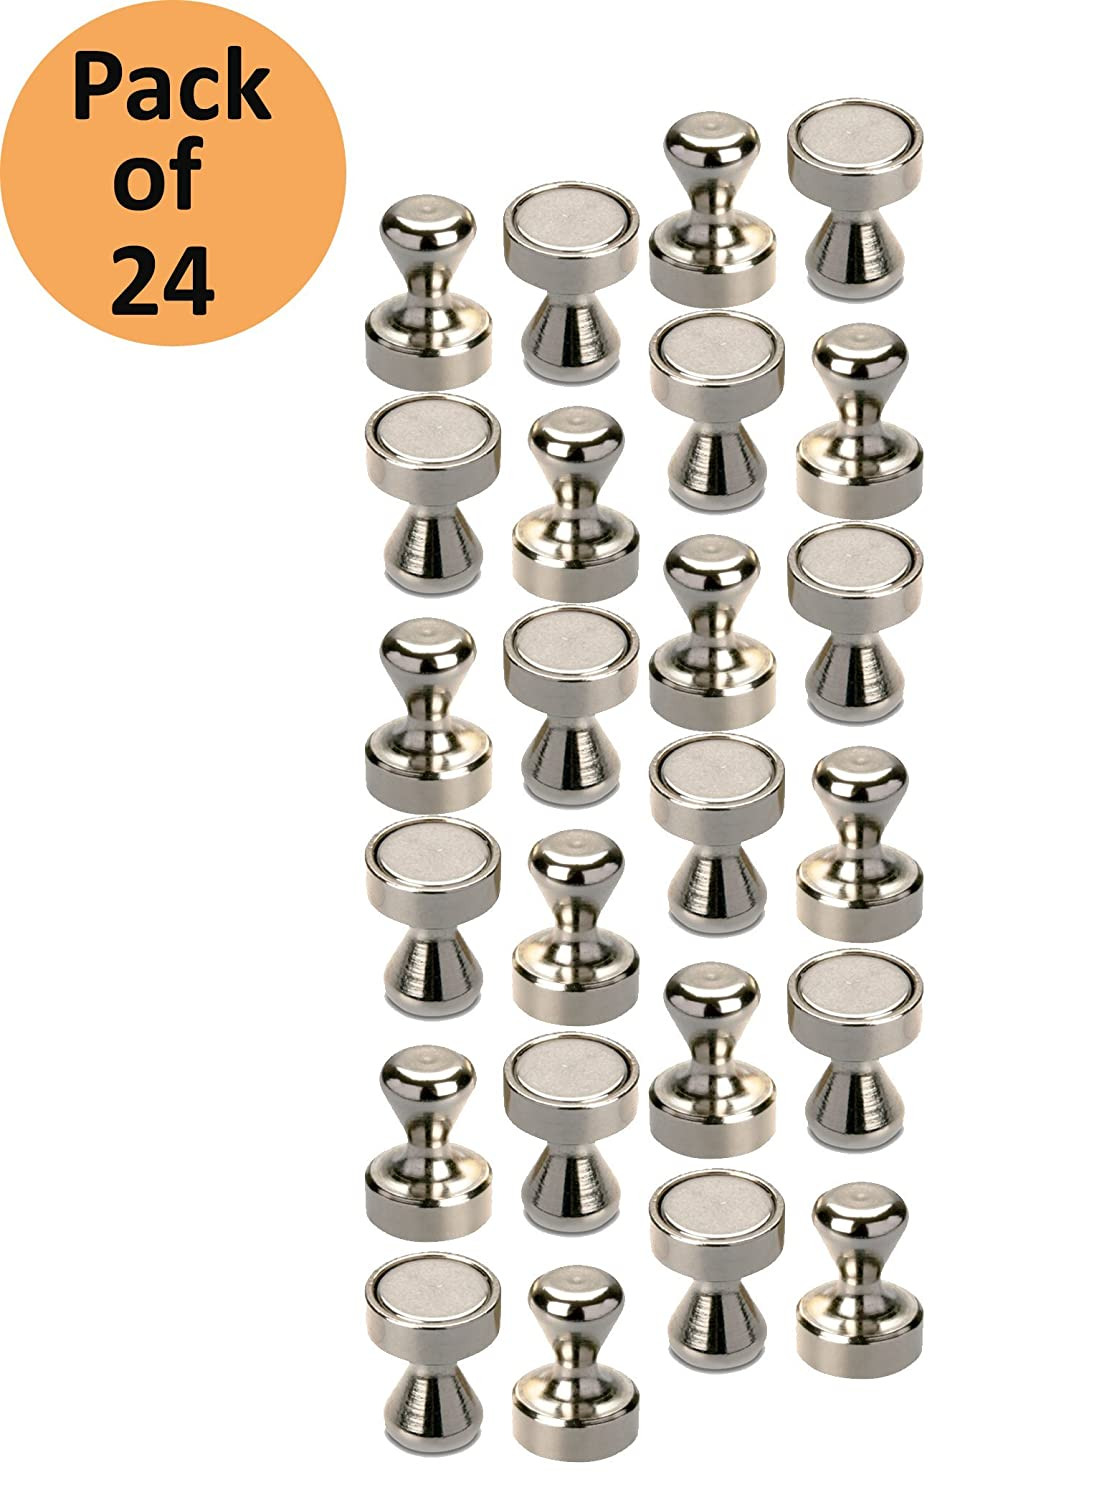 24 Brushed Neodymium Nickel Coated Magnetic Push Pins Hooks for Fridge, Bathroom, Kitchen, Locker,Classroom, Industrial use,Office, Dry Erase Whiteboard Magnets [ 24 Pack ] Sellers360